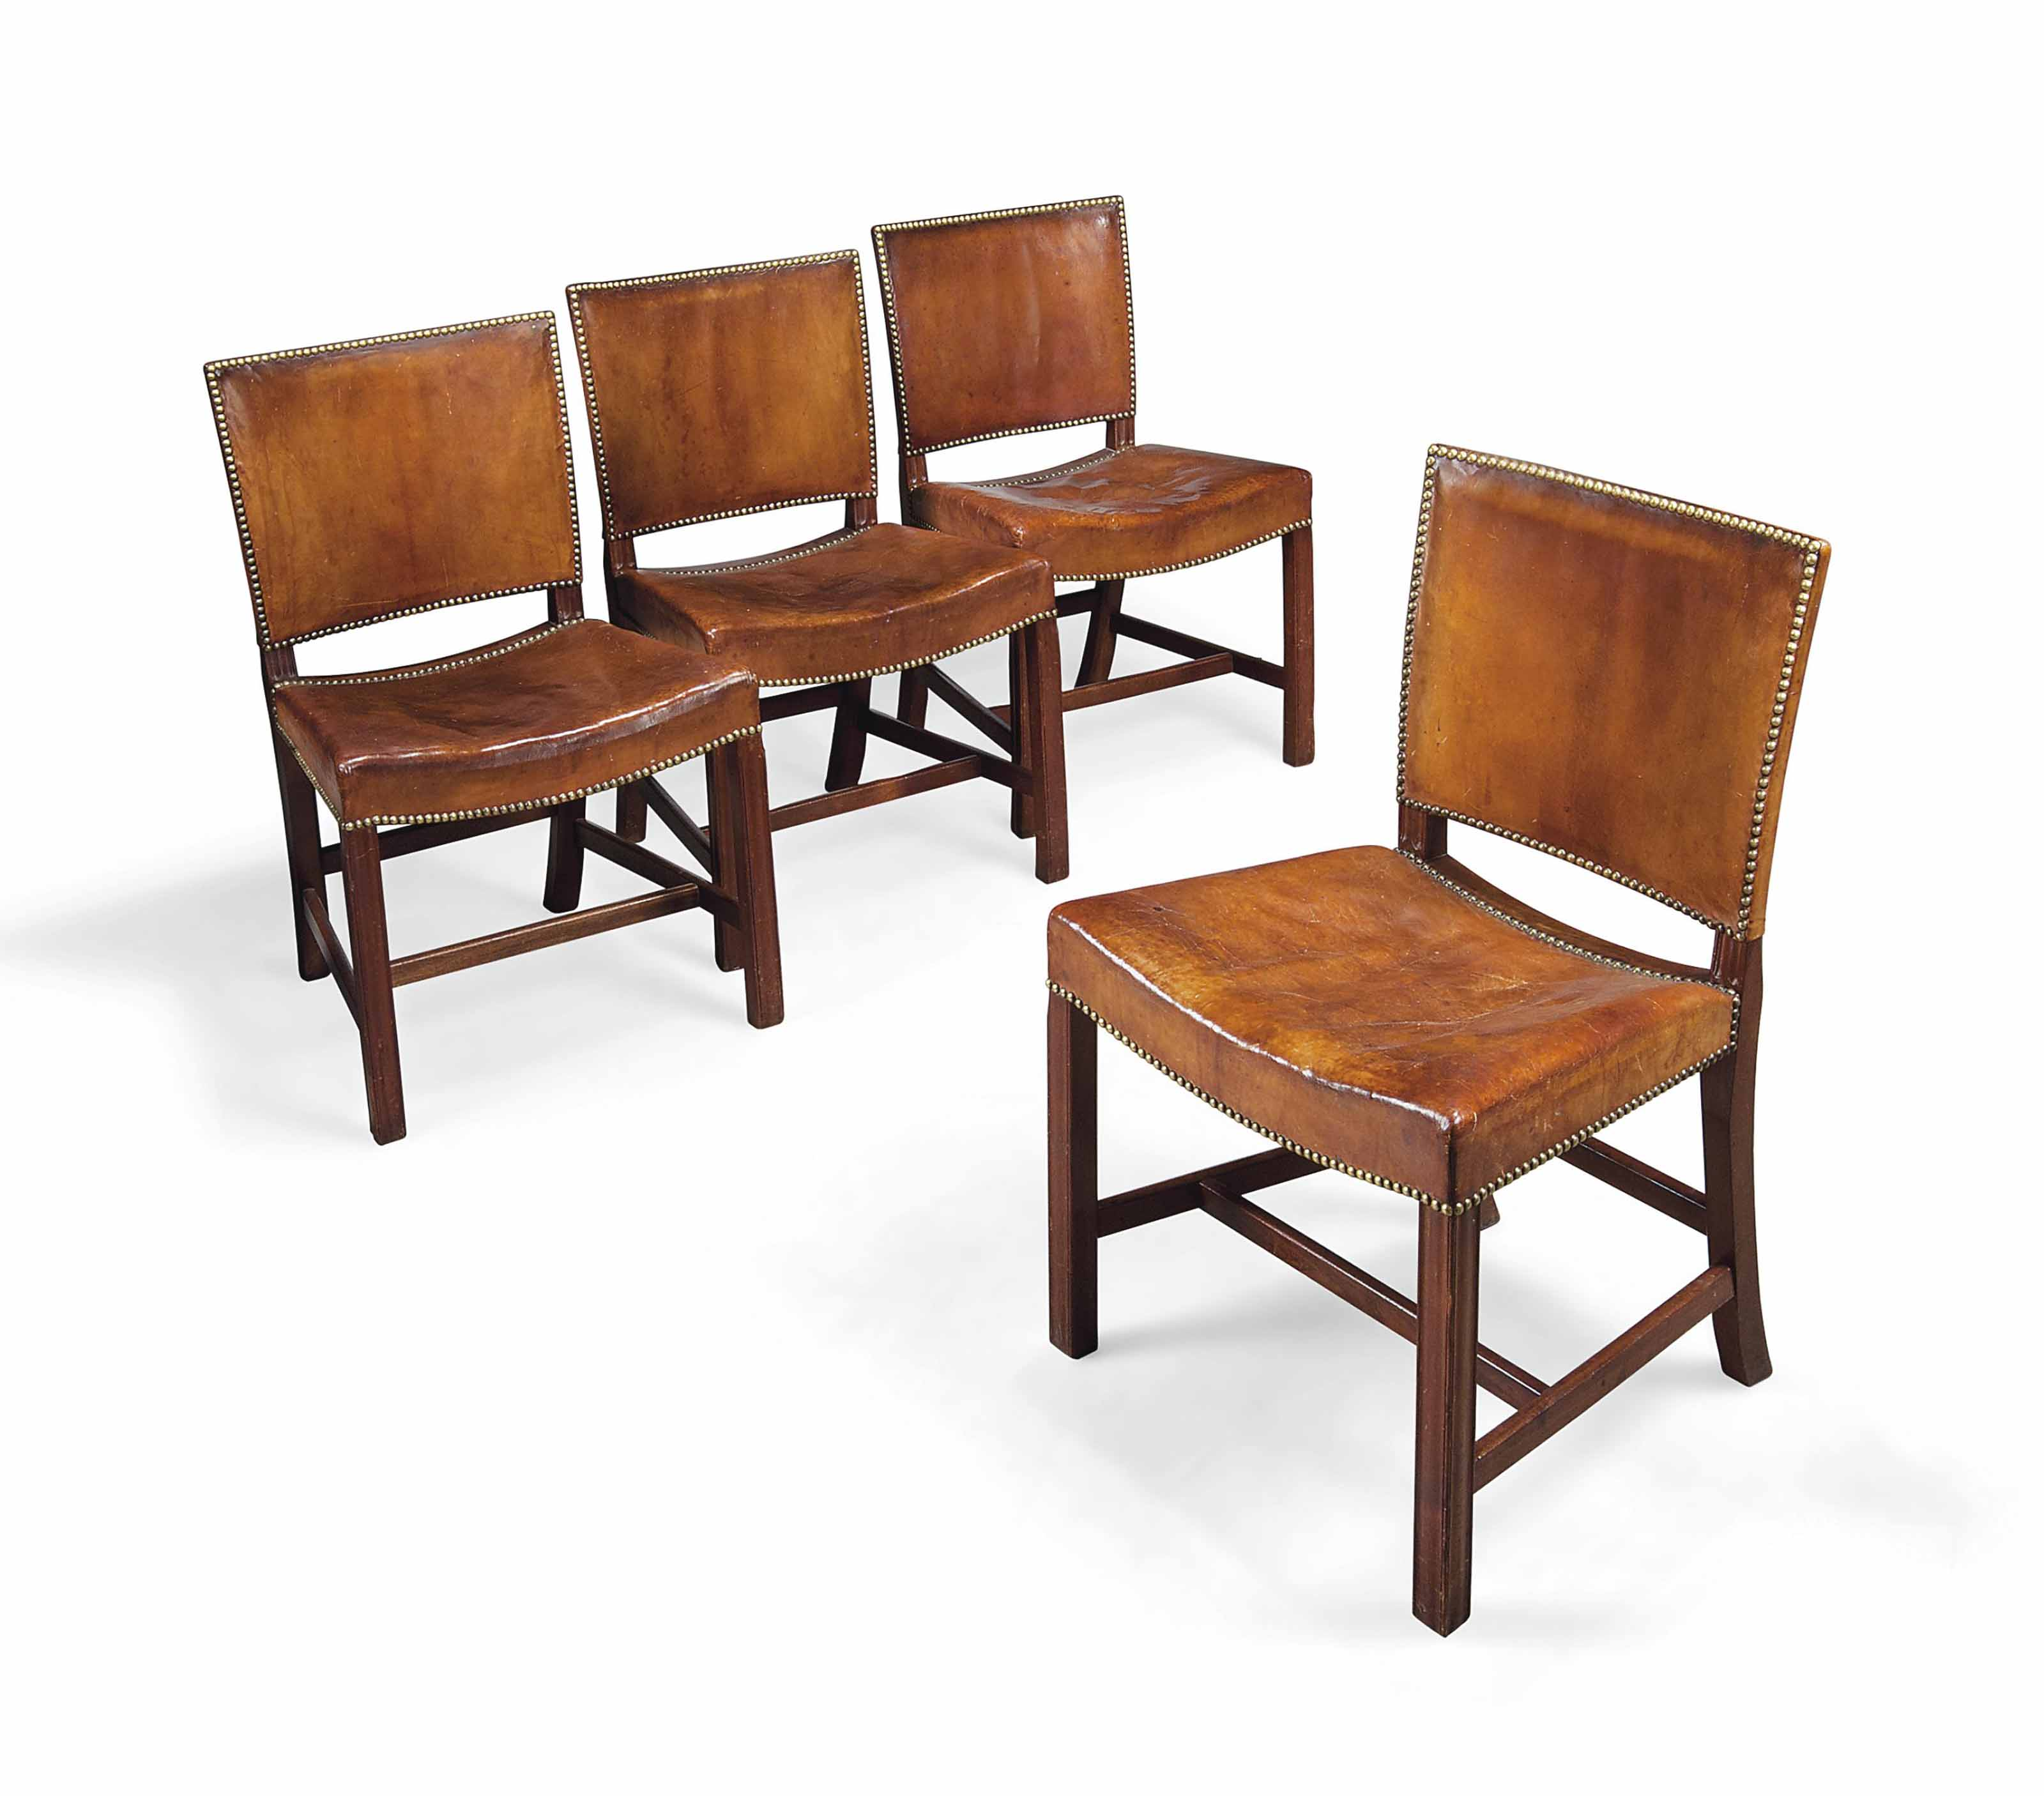 A SET OF FOUR KLINT KAARE (1888-1954) 'RED CHAIR' CUBAN MAHOGANY AND NIGERIAN LEATHER